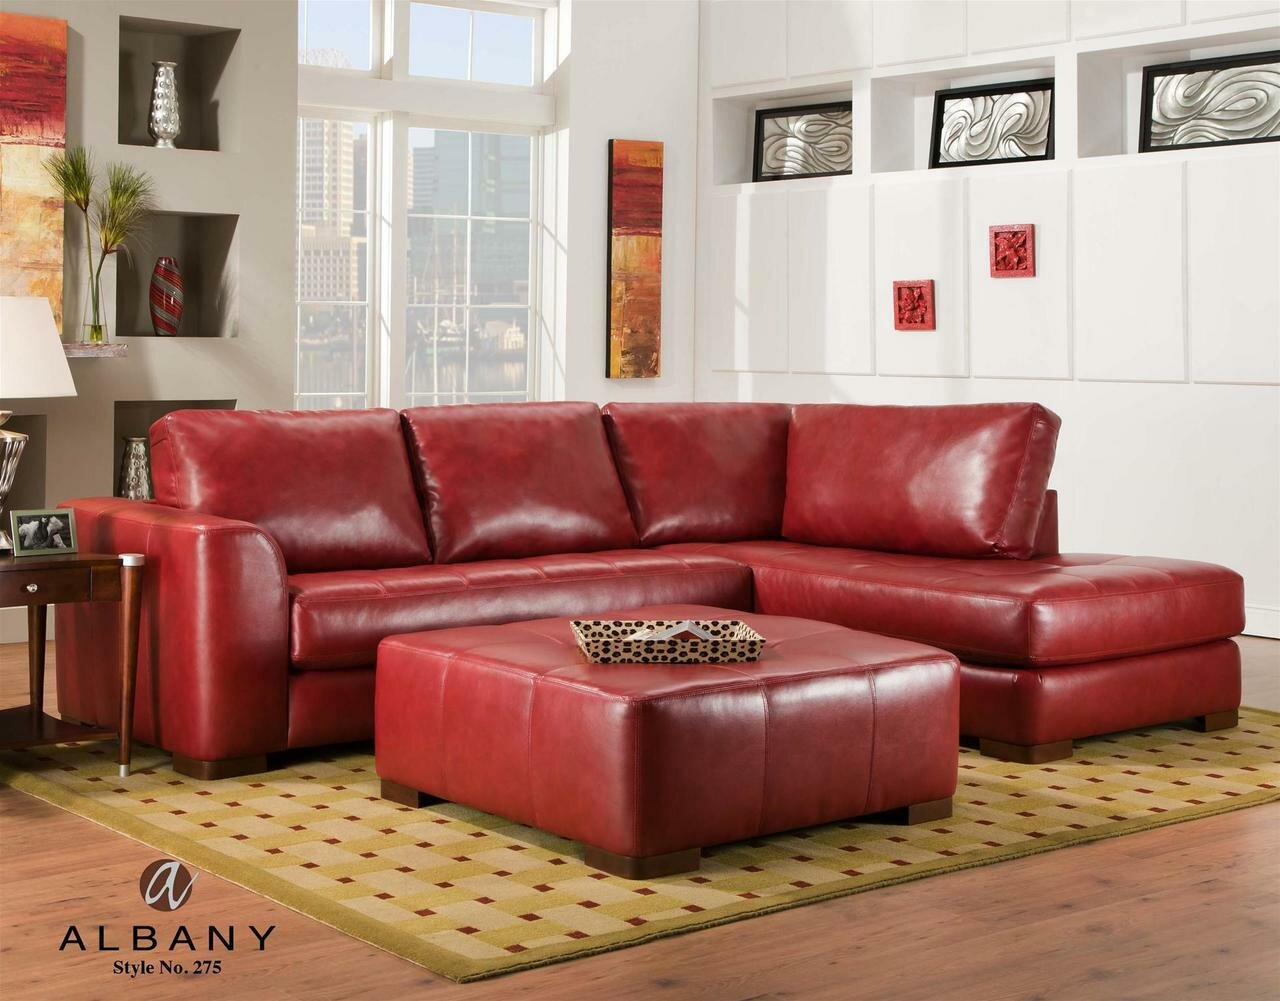 Grey Reclining Sectional Sofa | Red Sectional Sofa | Tan Sectional with Chaise